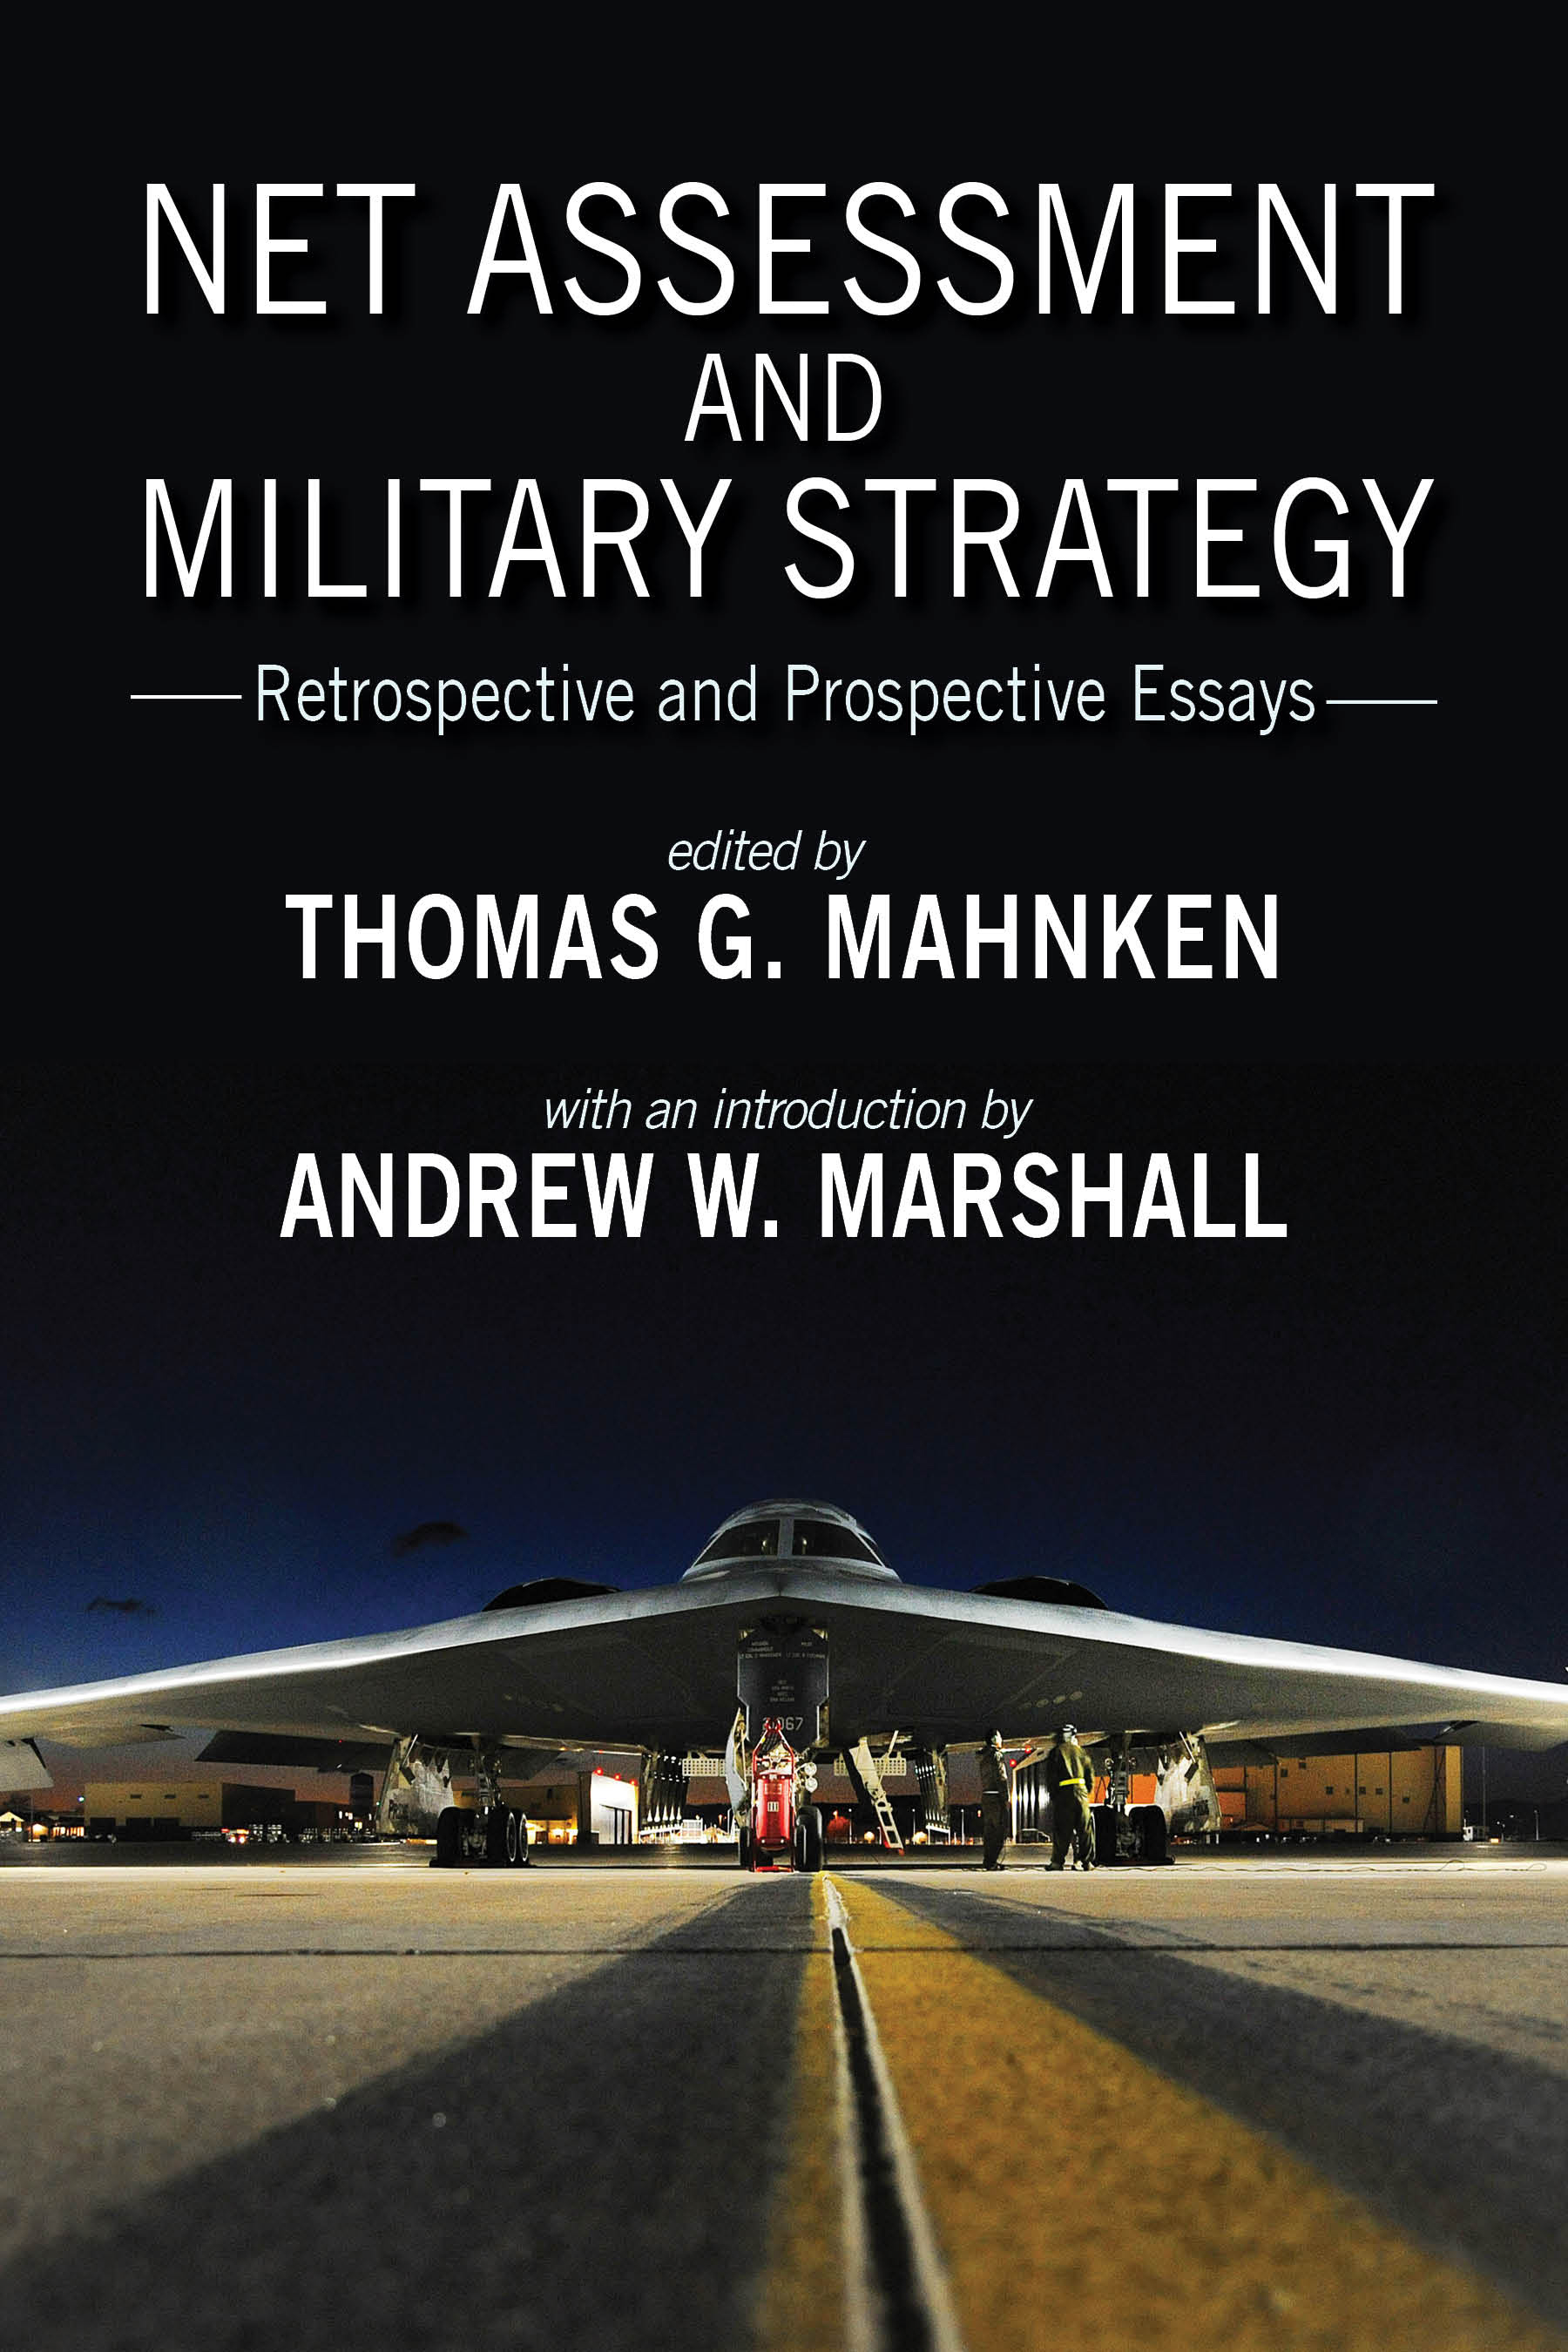 Net Assessment and Military Strategy: Retrospective and Prospective Essays Thomas G. Mahnken